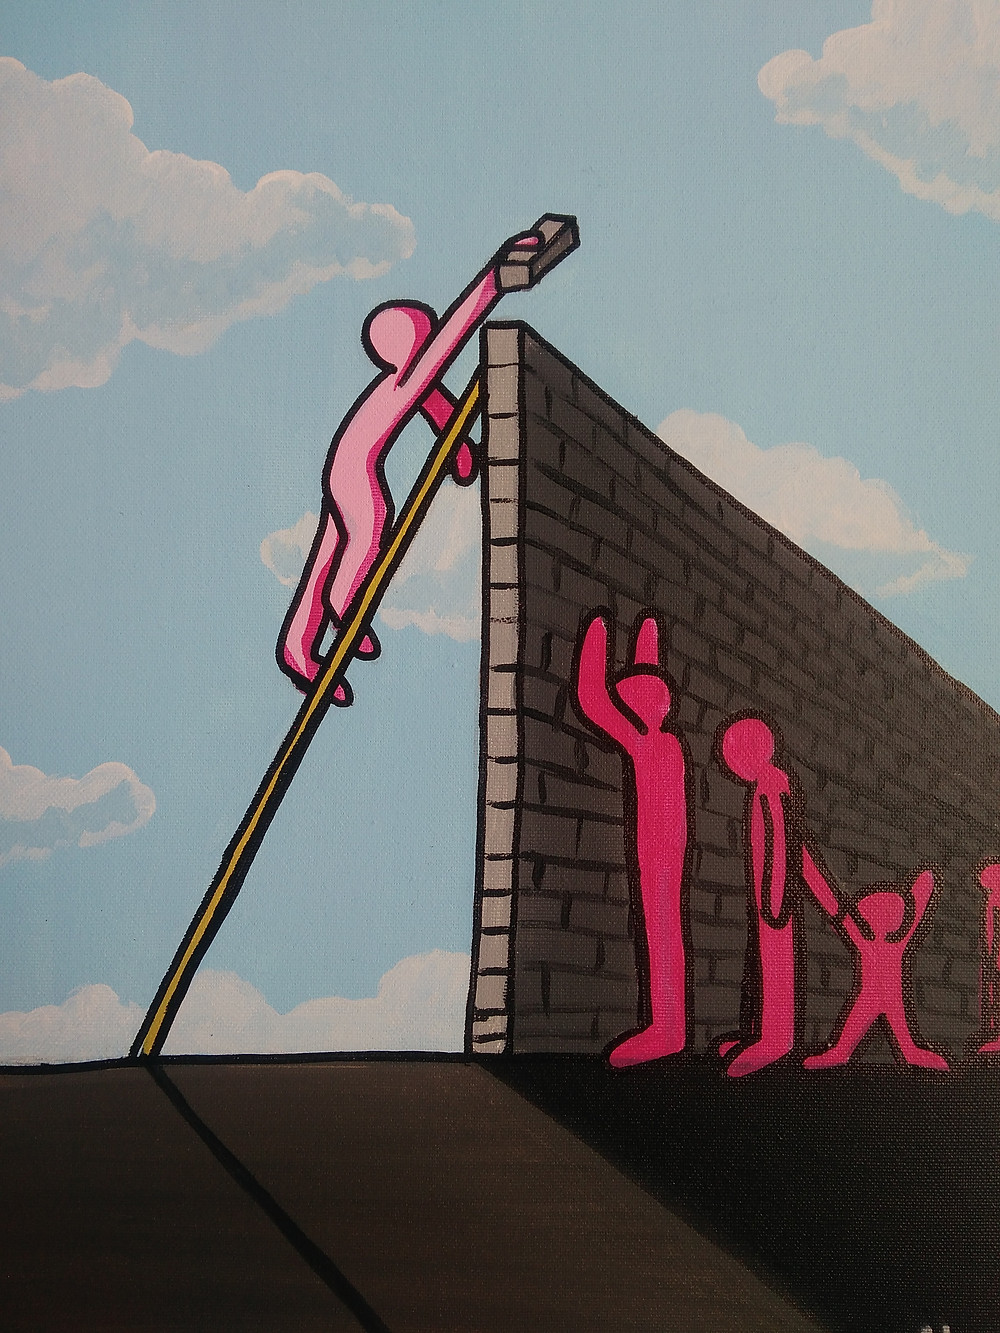 'Muri' by Christian Aloi (also known as Aluà) A single pink figure builds a awl which divides the people and causes sadness